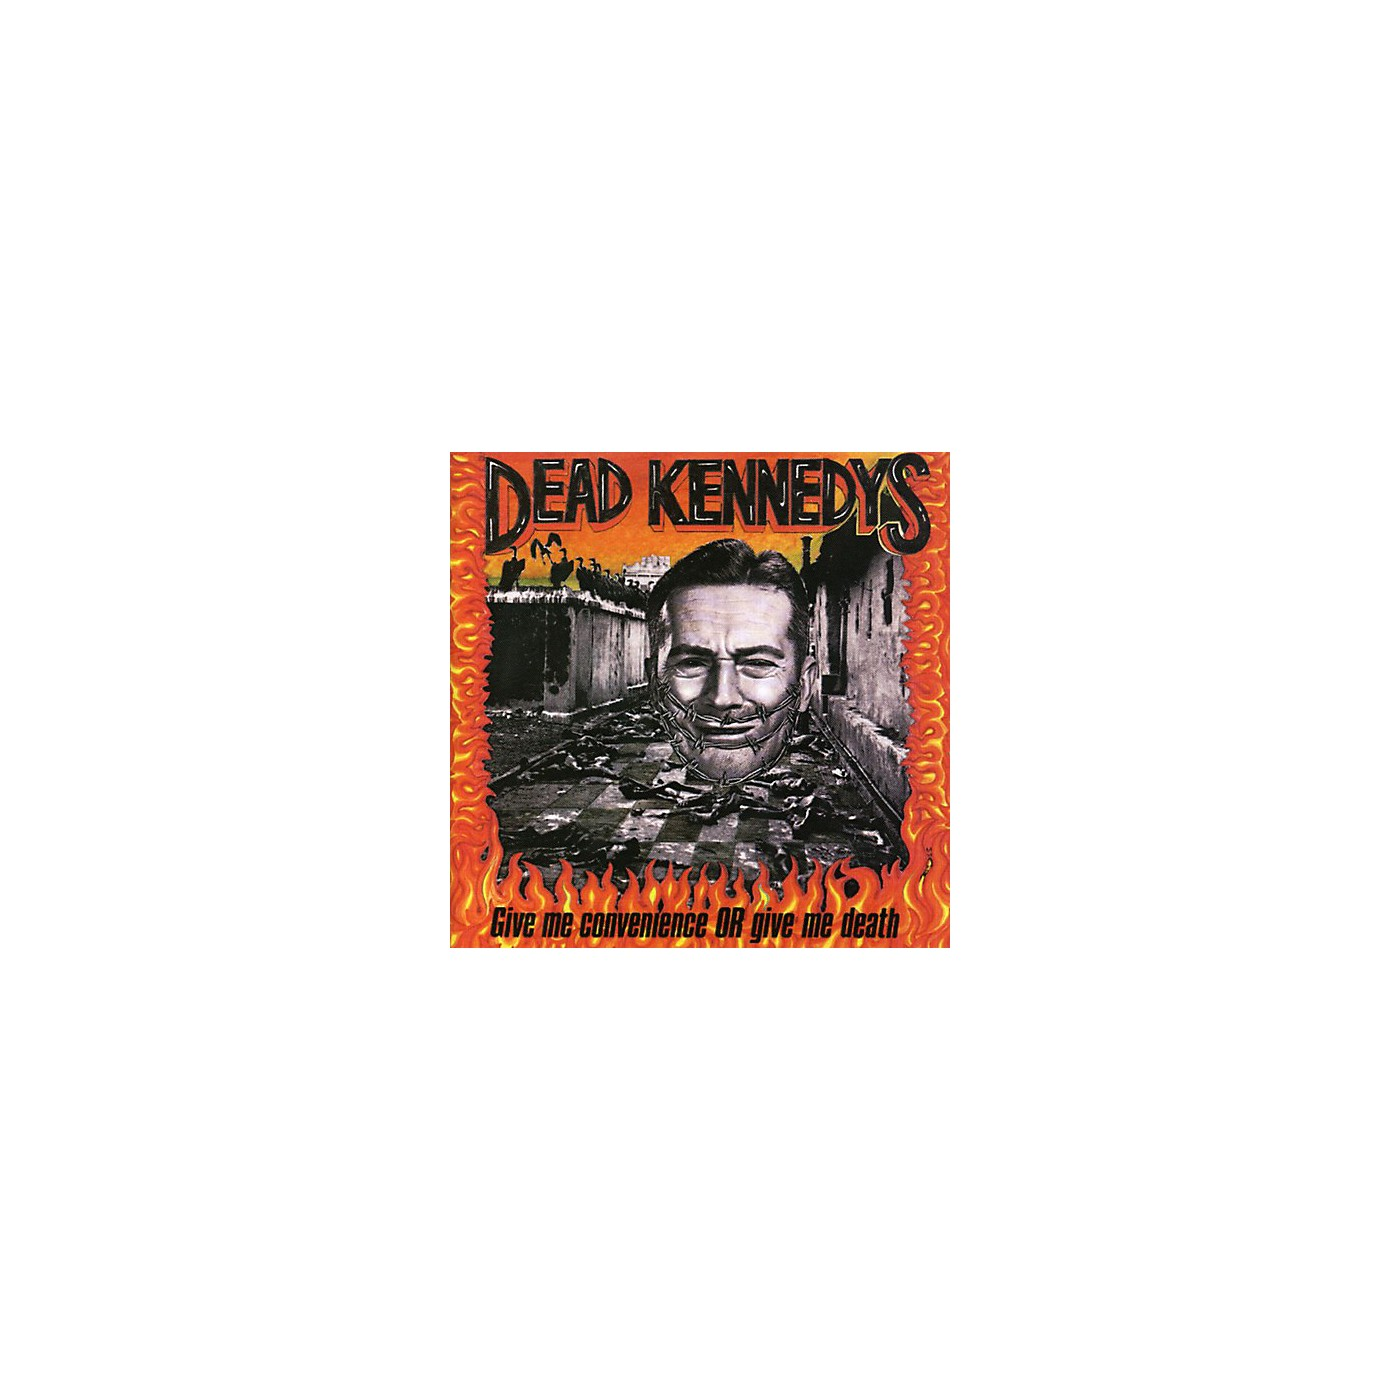 Alliance Dead Kennedys - Give Me Convenience or Give Me Death (CD) thumbnail